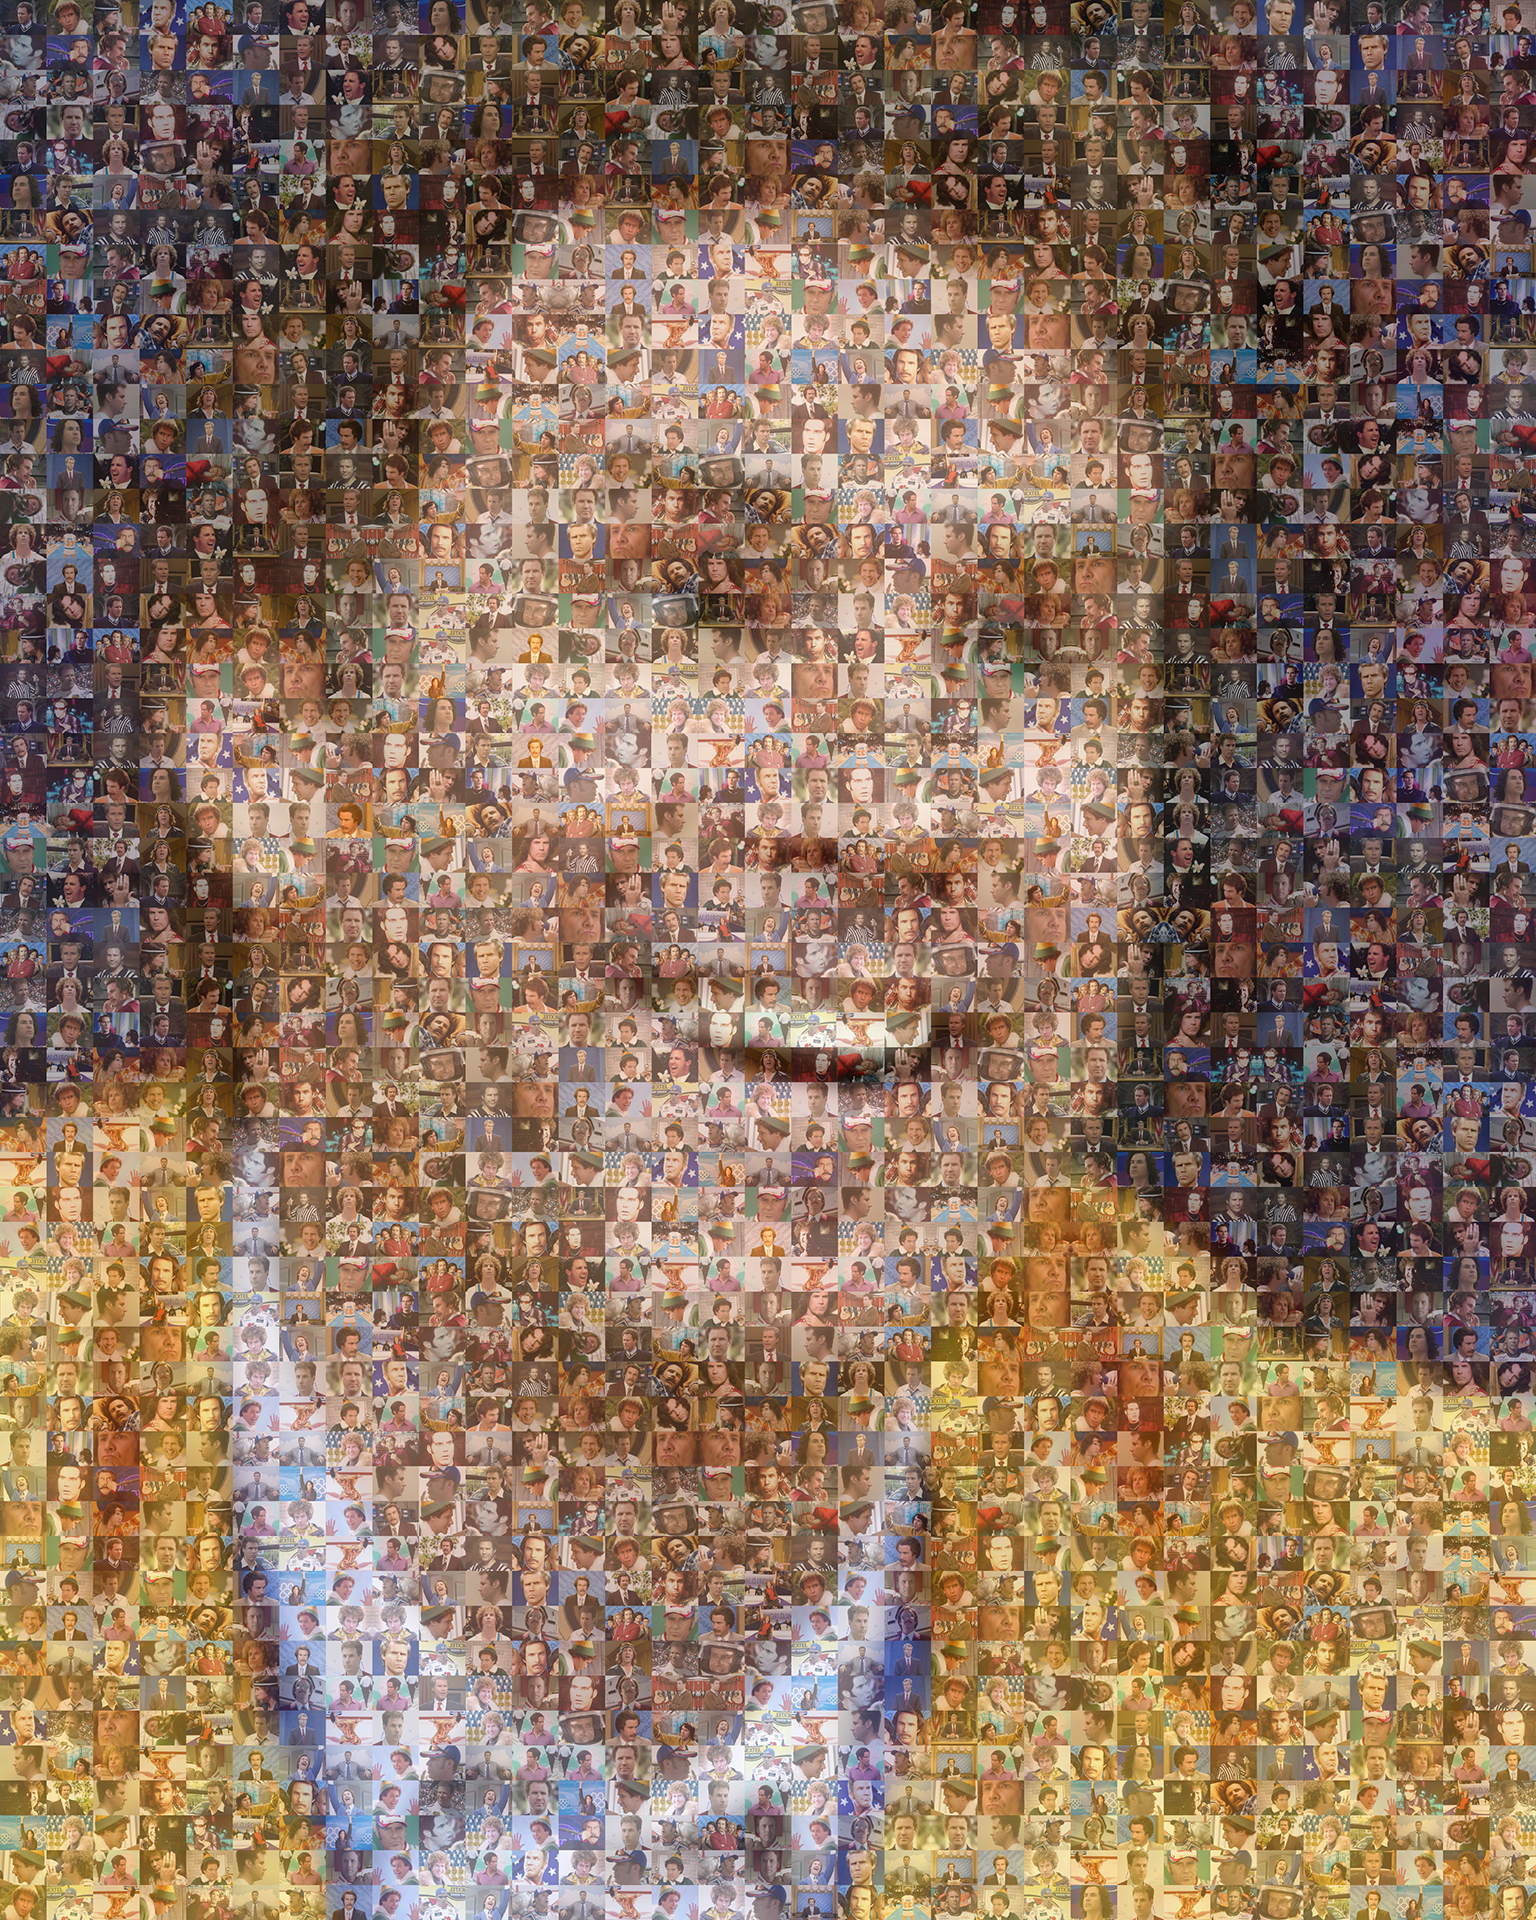 photo mosaic Using only 130 photos his movies, we created this stunning portrait of Will Ferrell